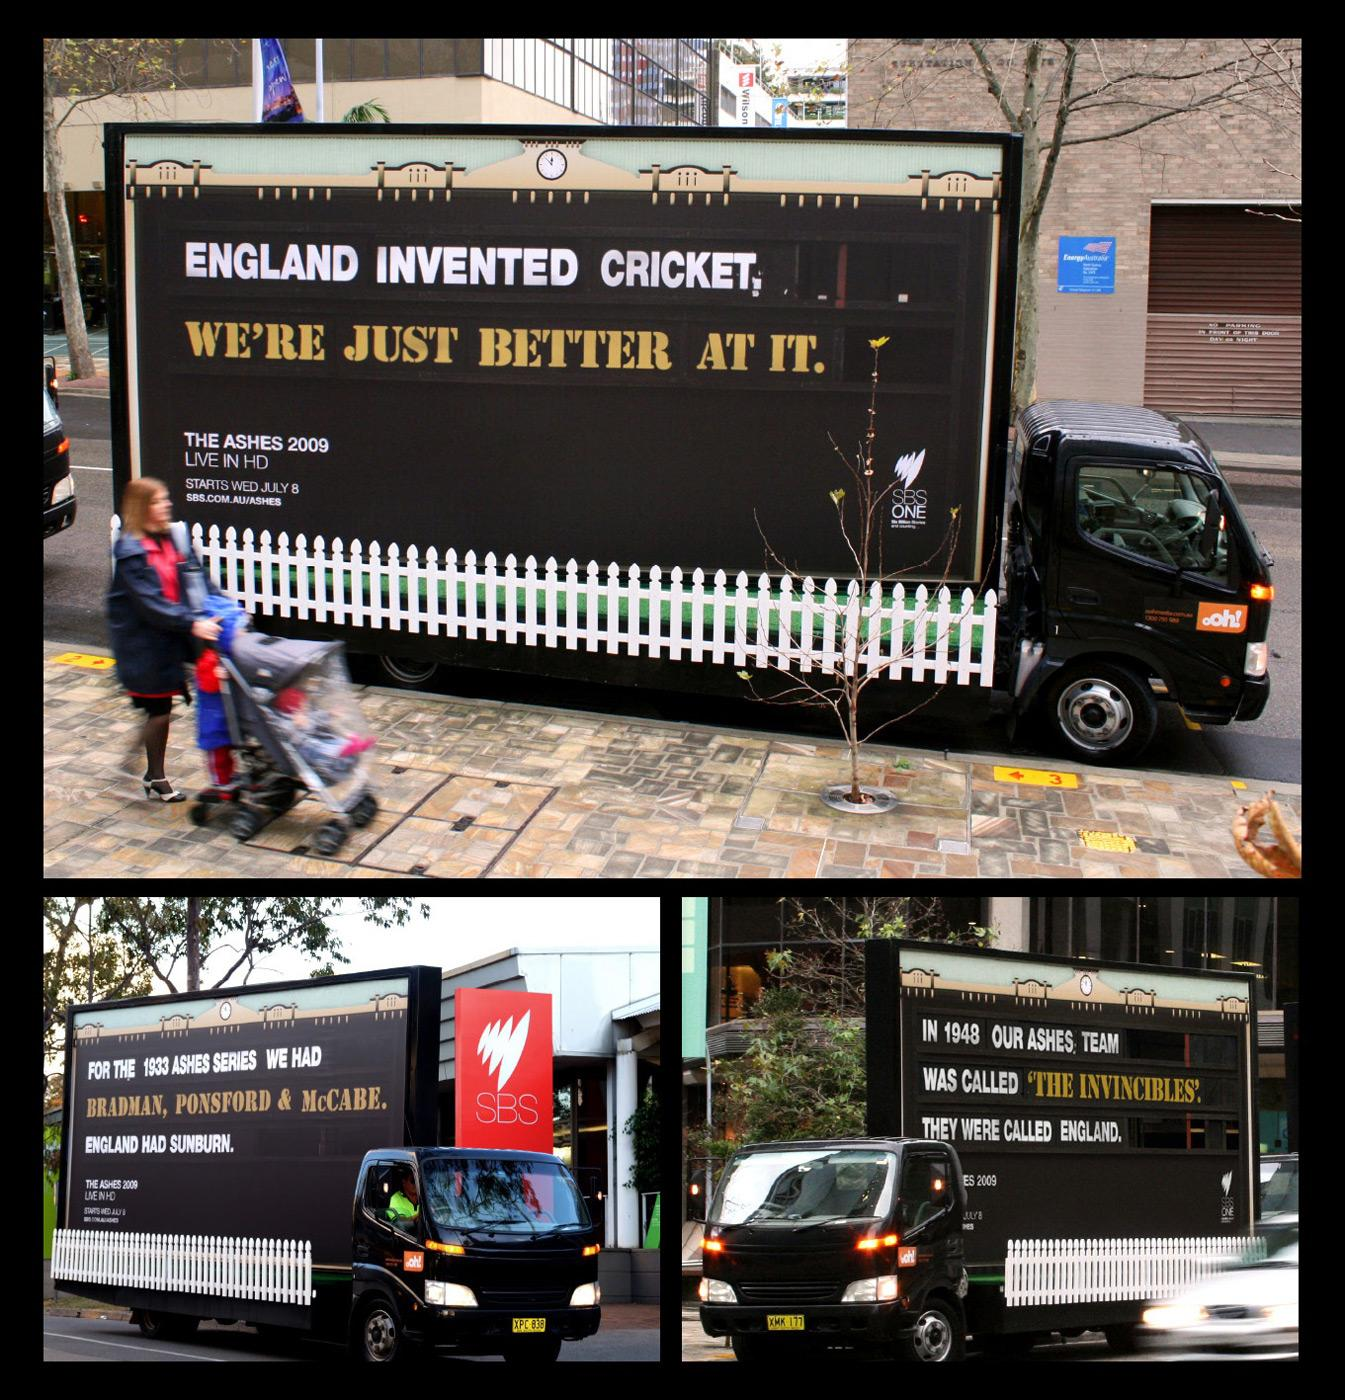 The Ashes Outdoor Ad -  England